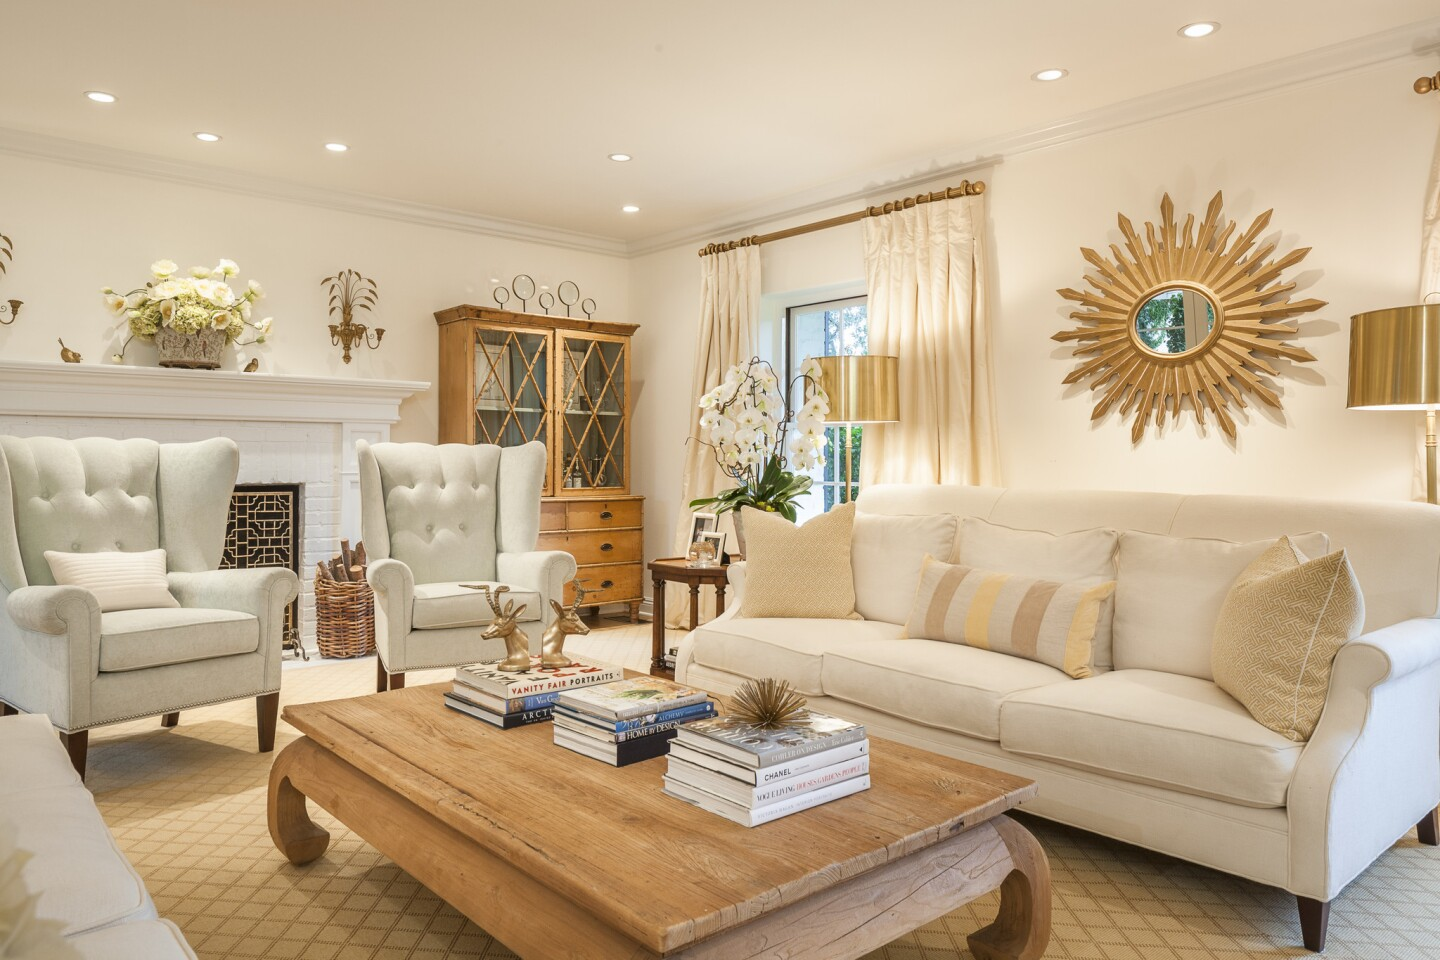 Home of the Day: A California classic by Harold J. Bissner